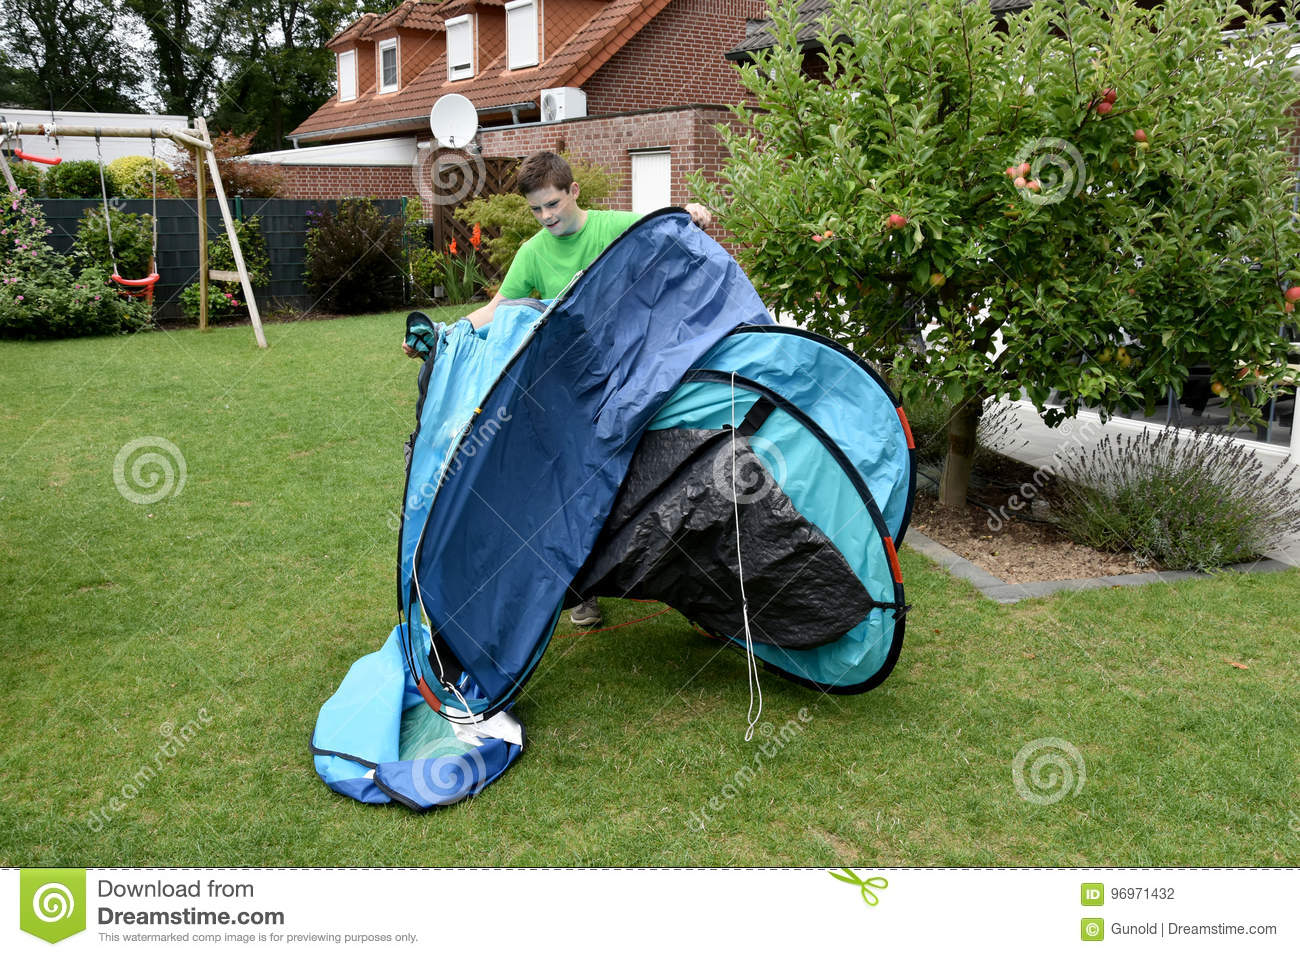 Boy Setting Up A Pop Up Tent Stock Photo - Image of practice